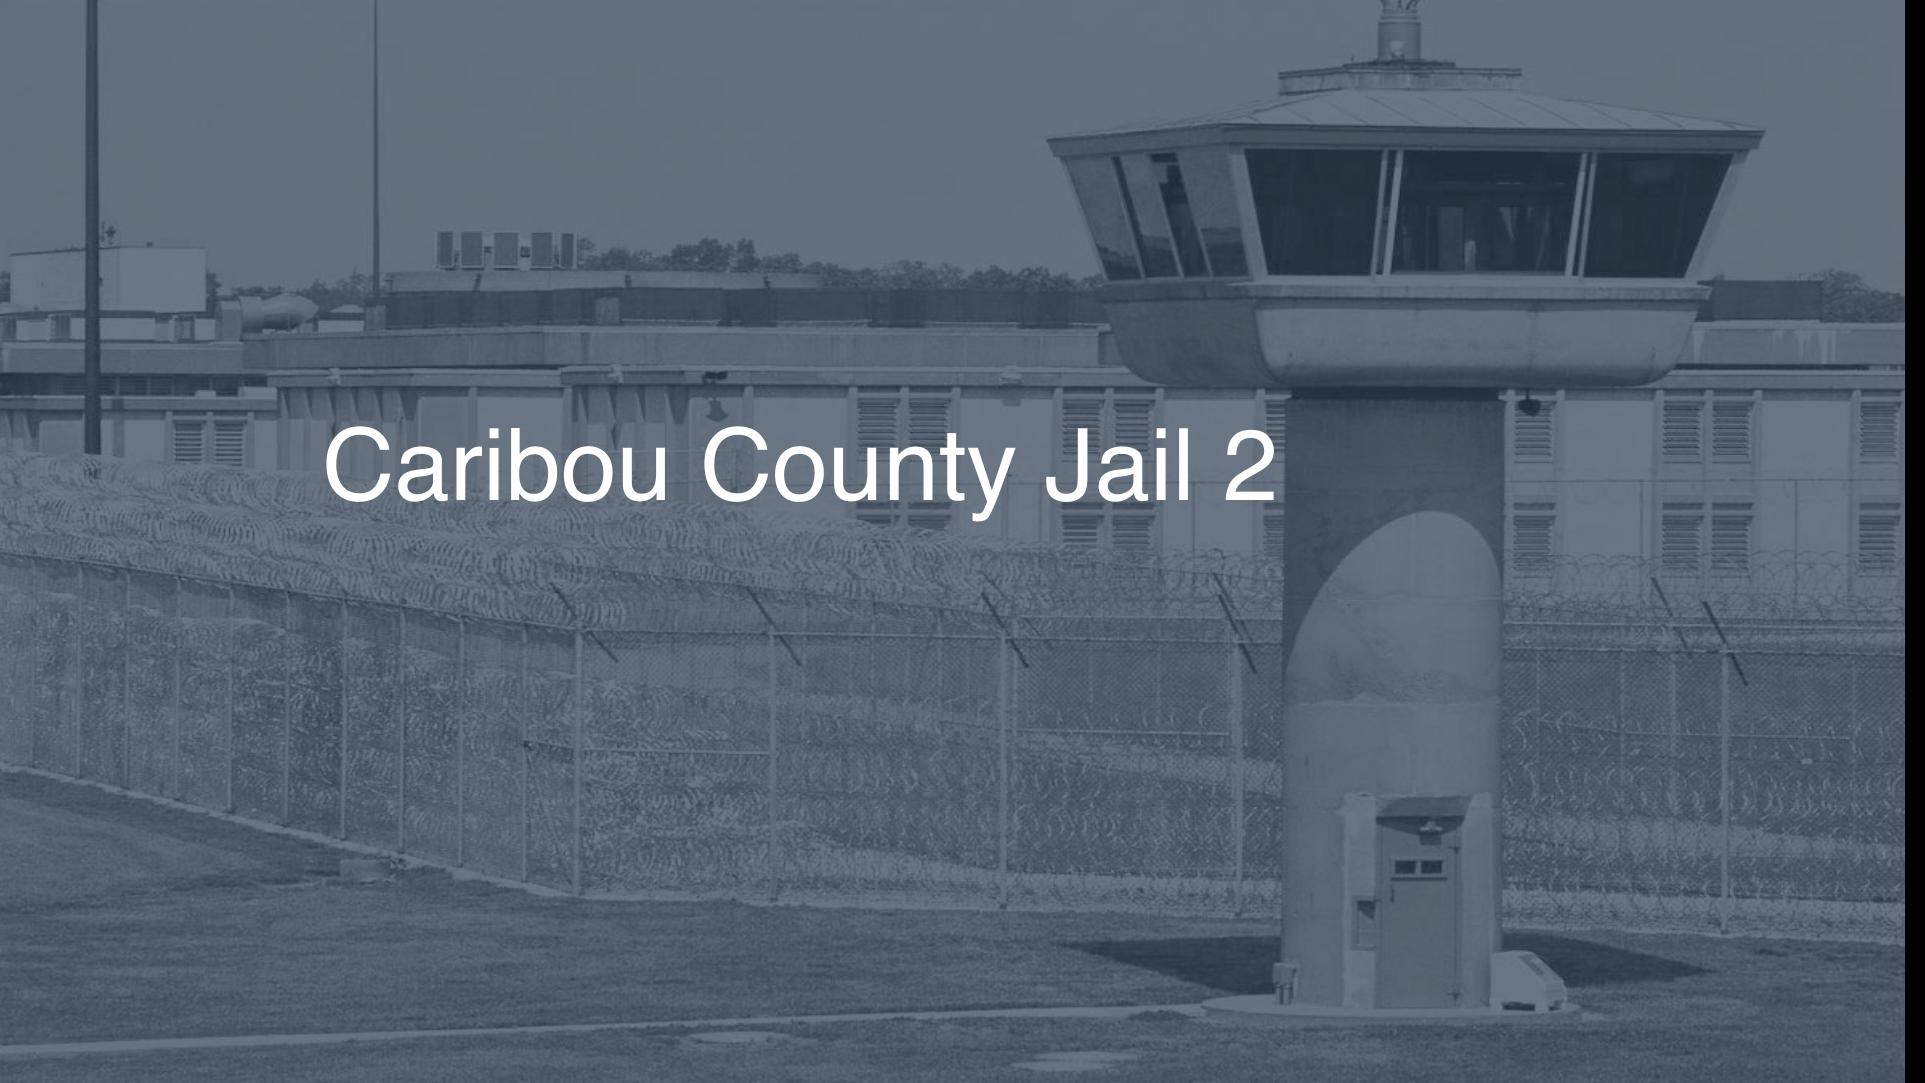 Caribou County Jail Inmate Search, Lookup & Services - Pigeonly